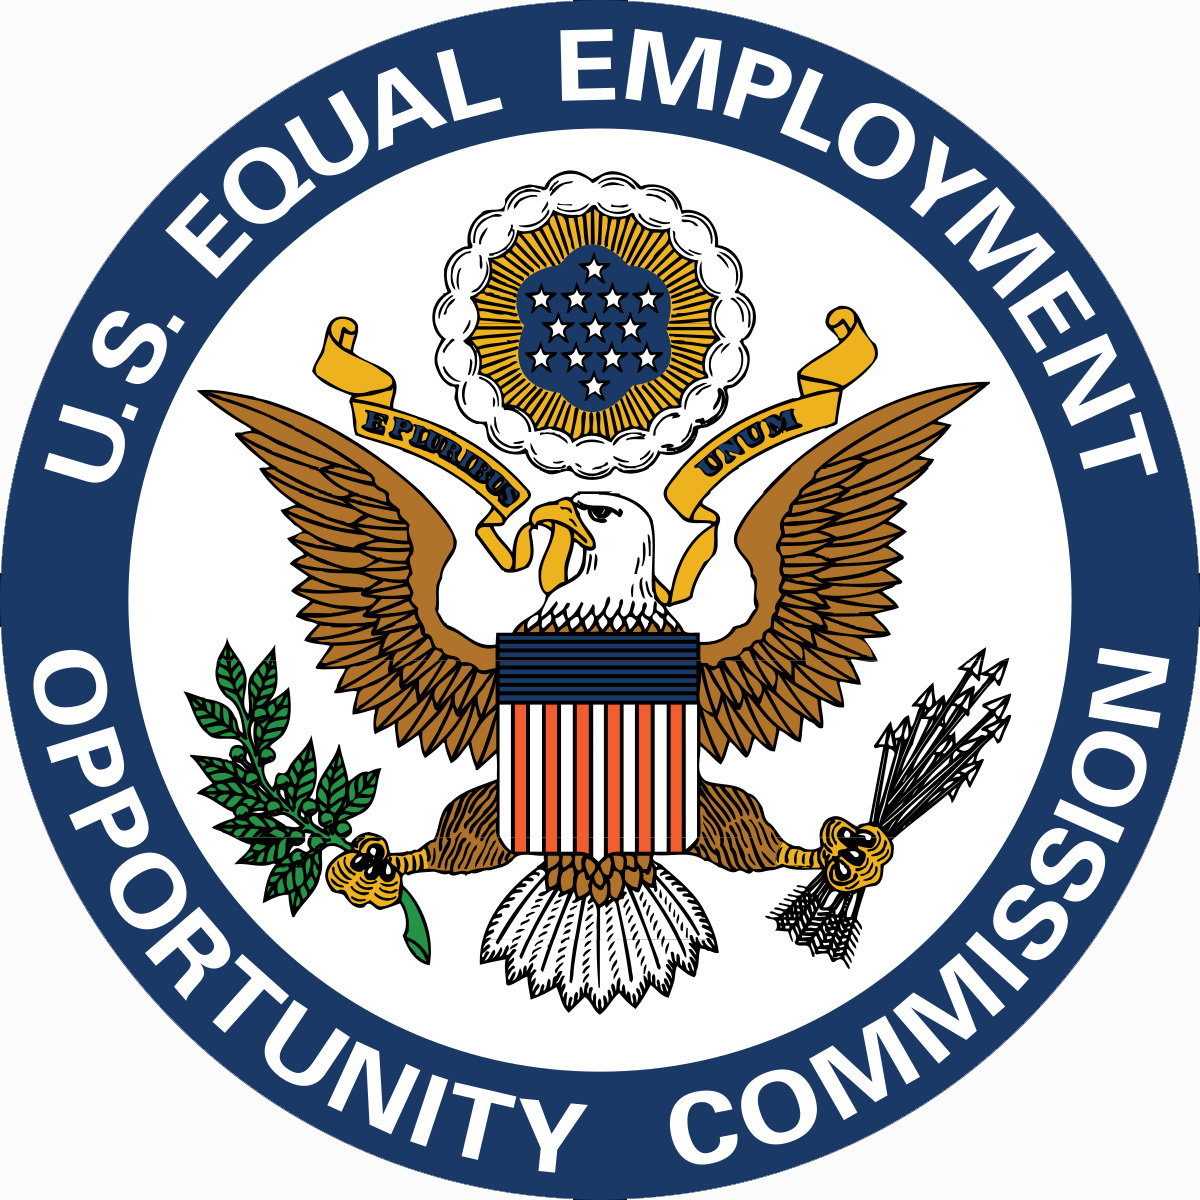 Eeoc definition of sexual harassment